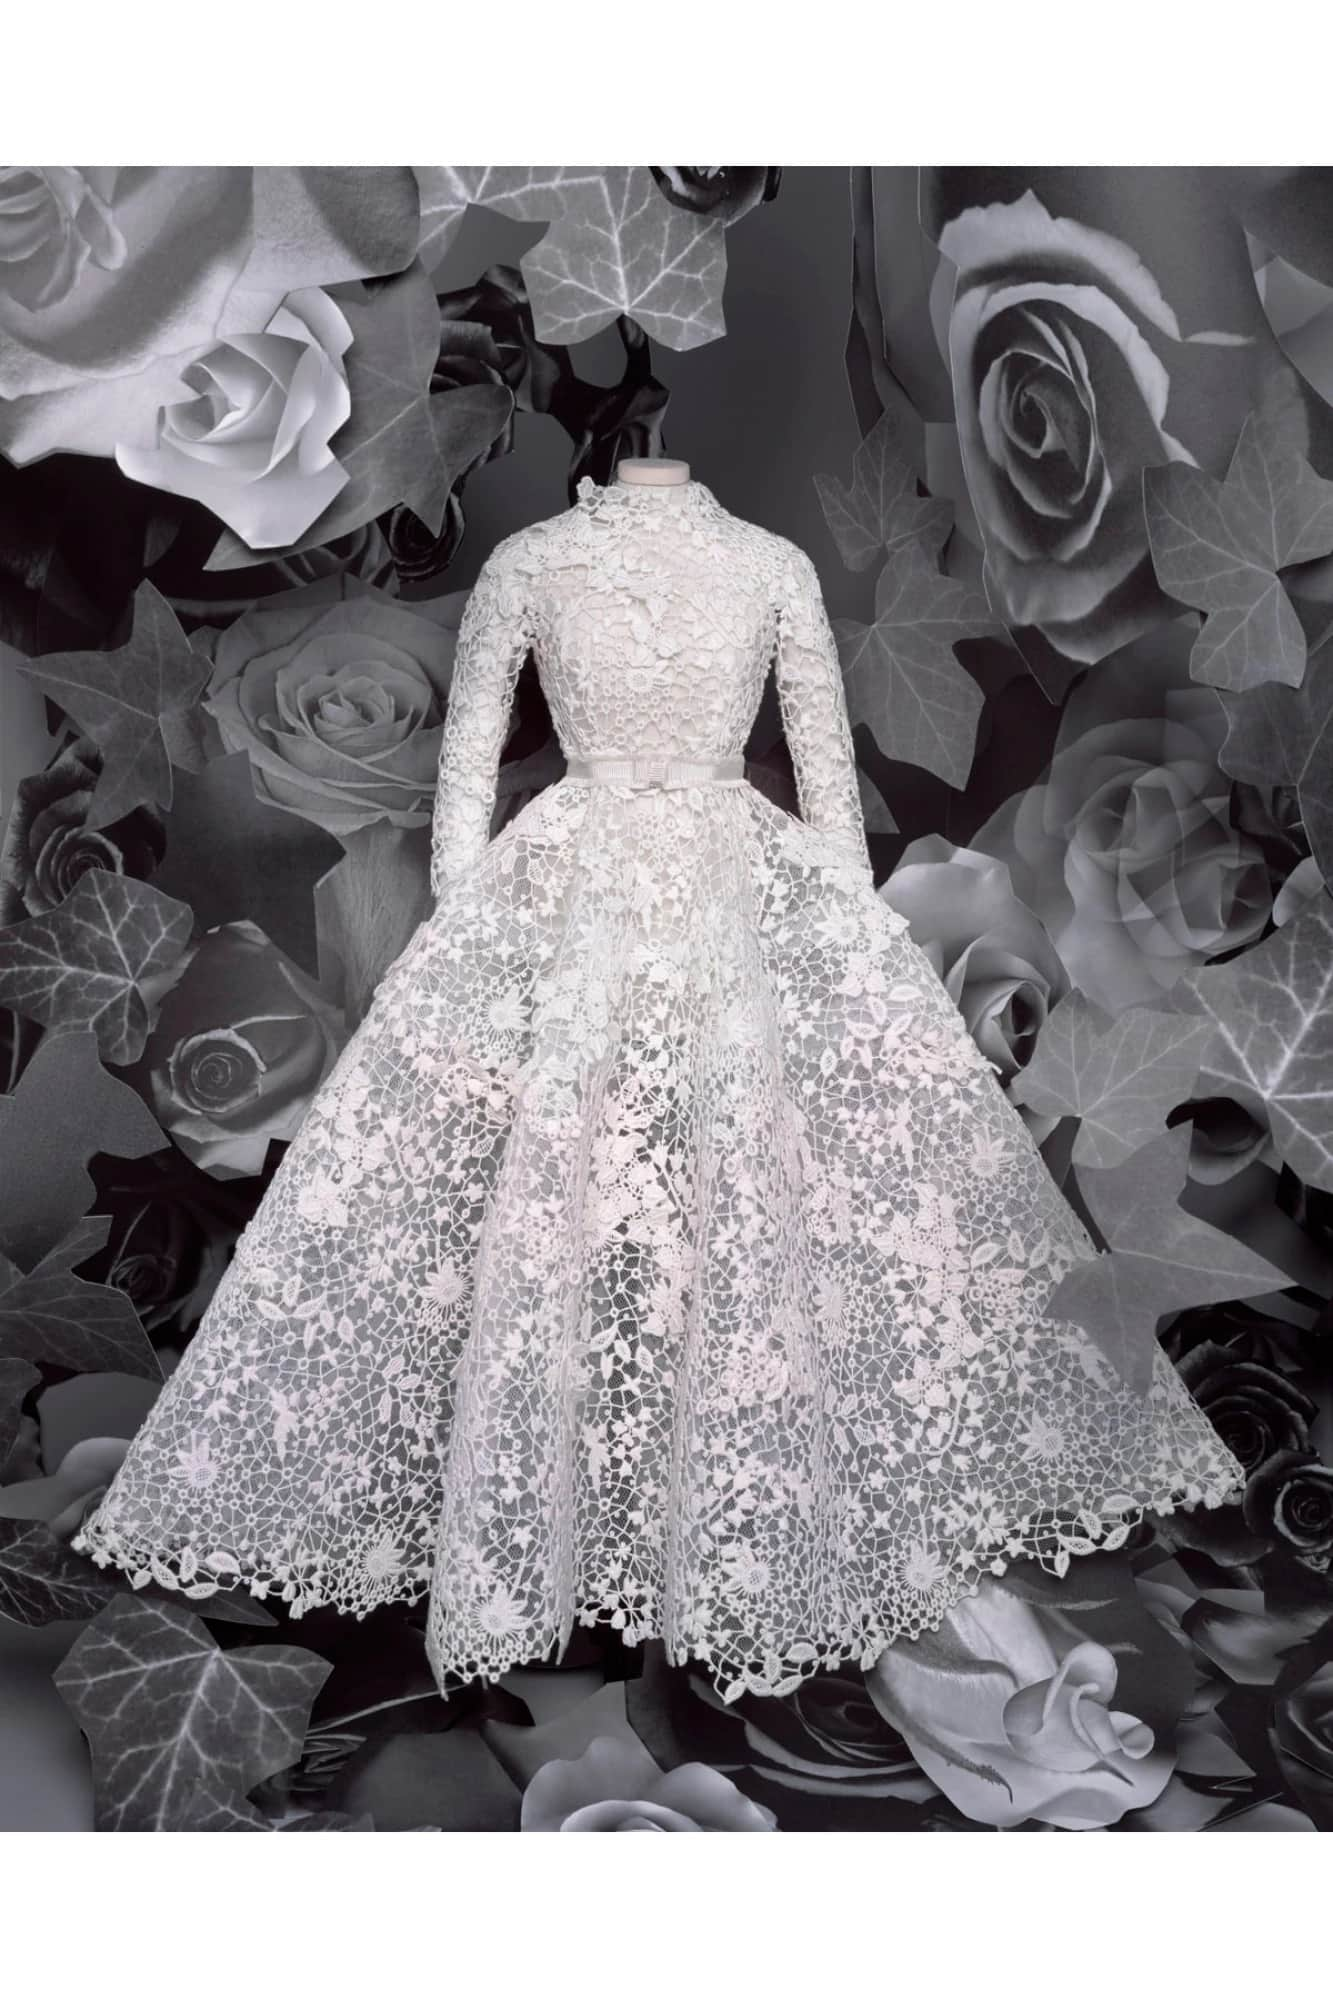 Christian Dior Haute Couture Fall-Winter 2020-2021 Paris Digital Fashion week. RUNWAY MAGAZINE ® Collections. RUNWAY NOW / RUNWAY NEW